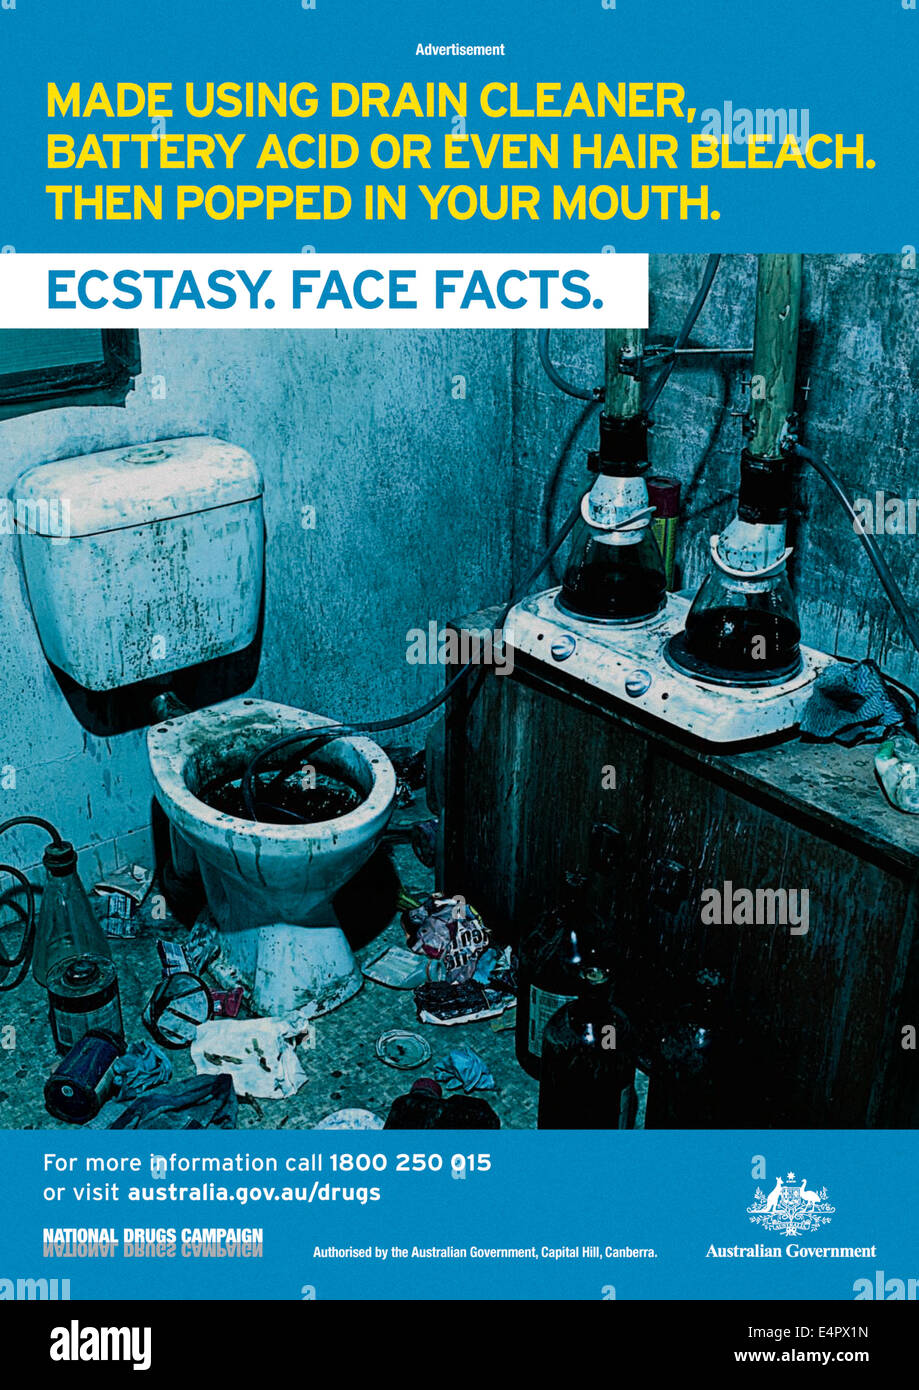 'Made using drain cleaner...' print advert, part of the Australian 'Ecstasy, Face Facts' Campaign - Stock Image